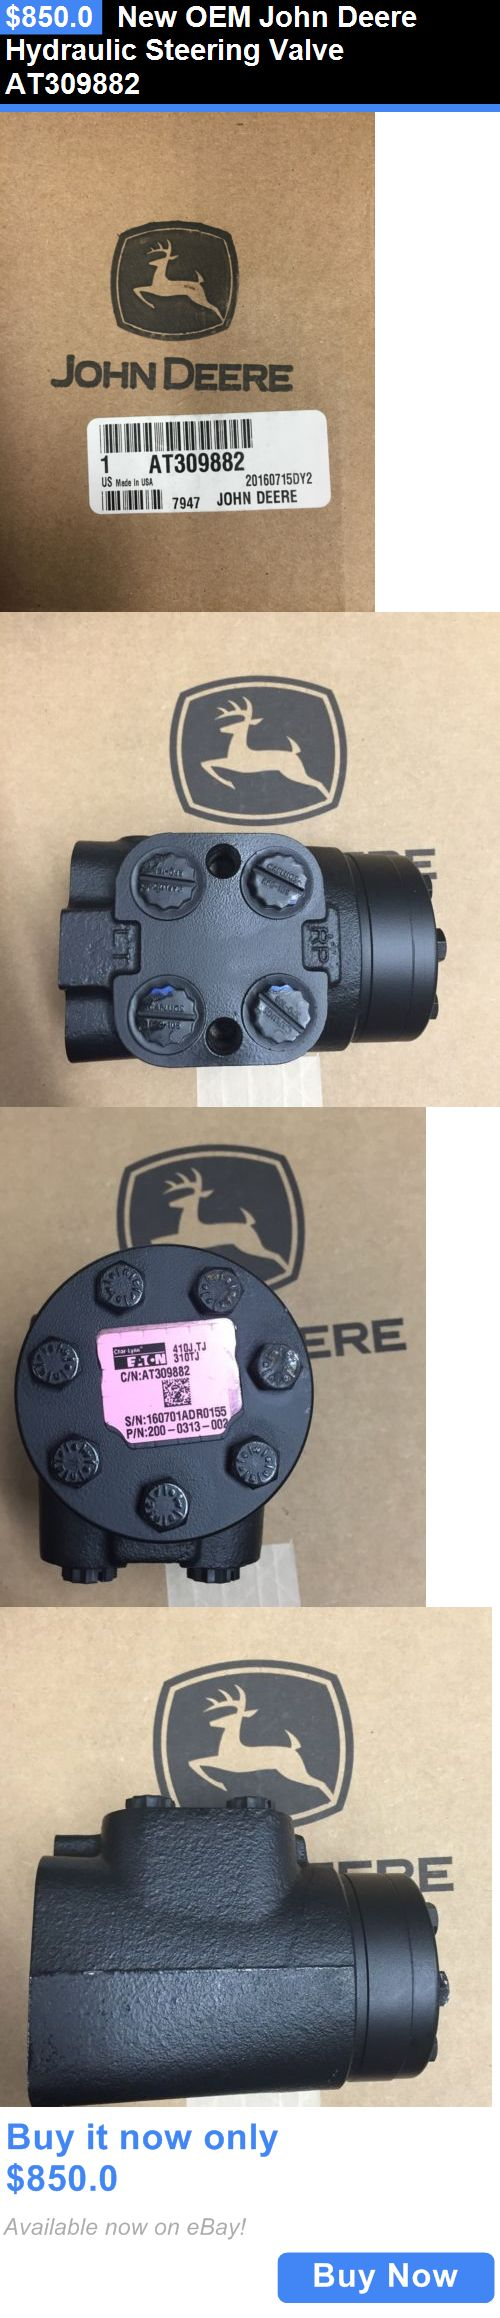 heavy equipment: New Oem John Deere Hydraulic Steering Valve At309882 BUY IT NOW ONLY: $850.0